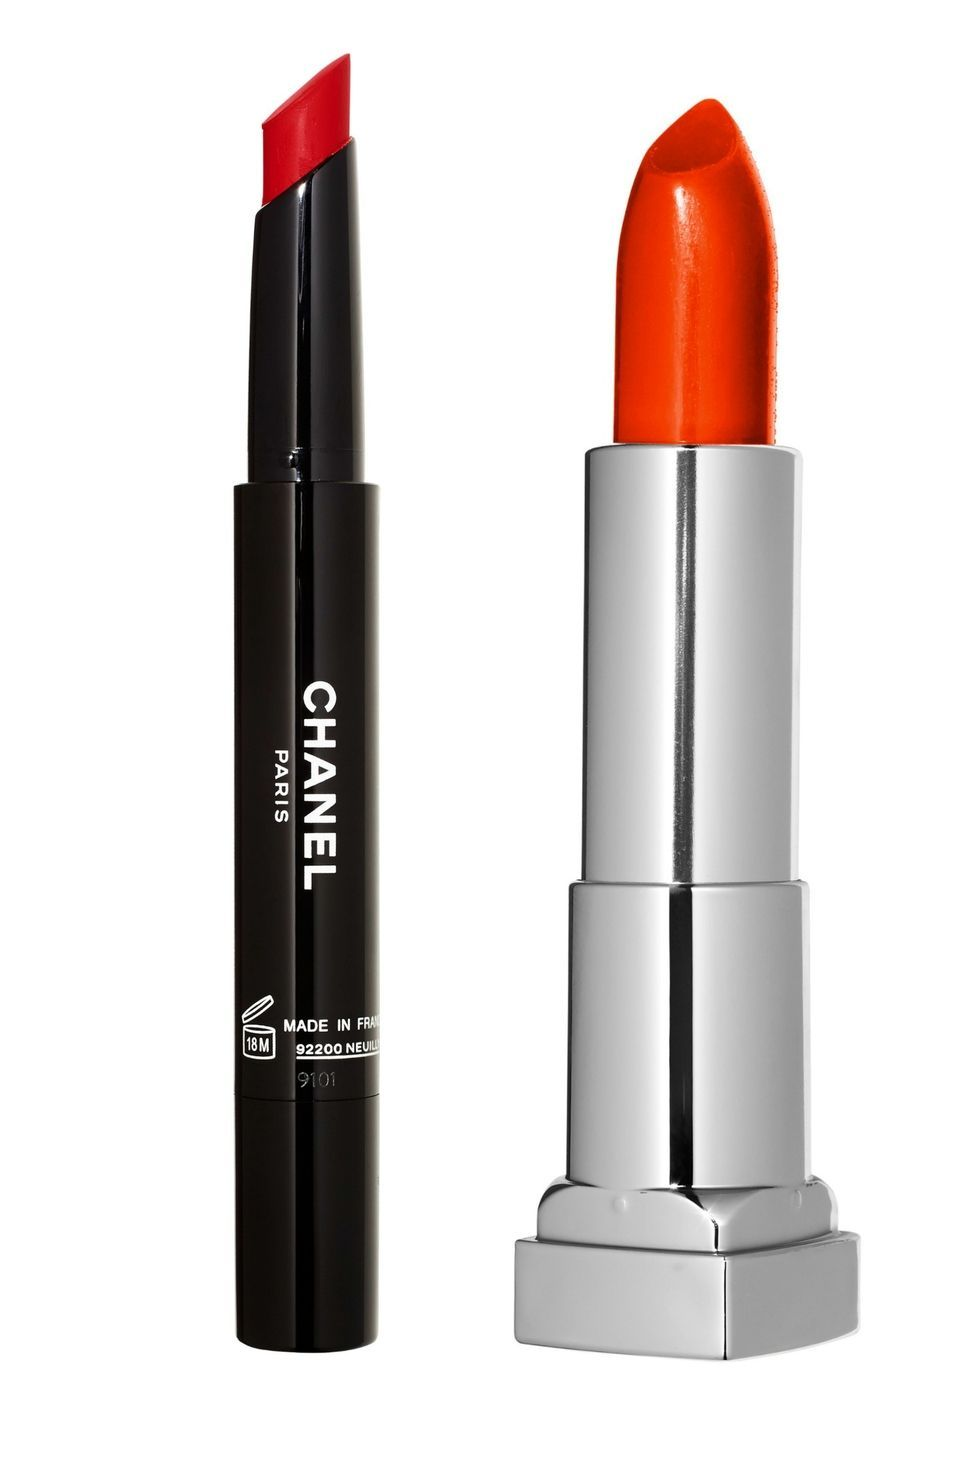 Best Nude Lipsticks For Every Skin Tone - Our Top 12